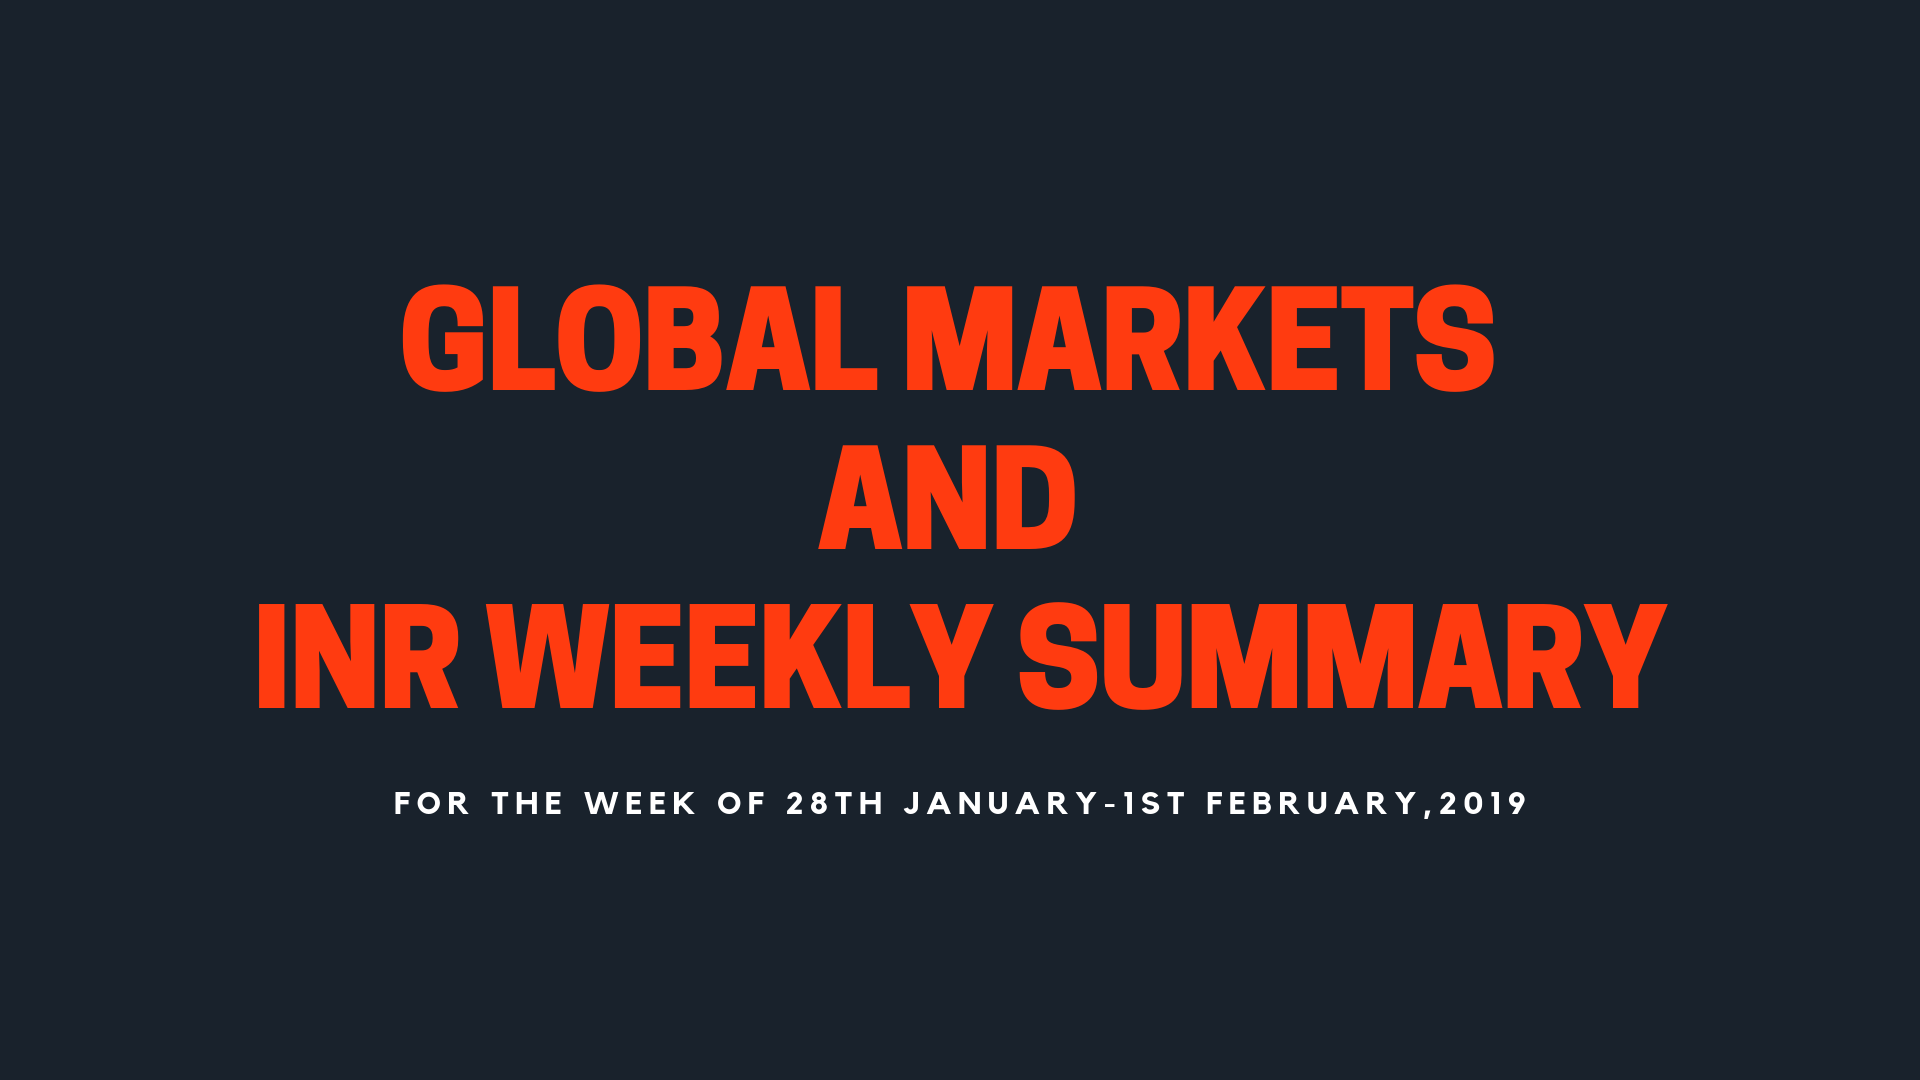 GLOBAL MARKETS AND INR WEEKLY SUMMARY (28th January-1st February,2019)